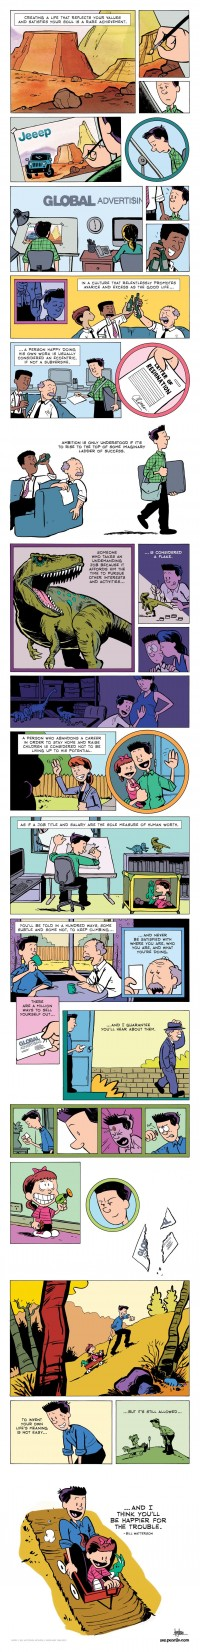 ZEN PENCILS - 128. BILL WATTERSON: A cartoonist's advice